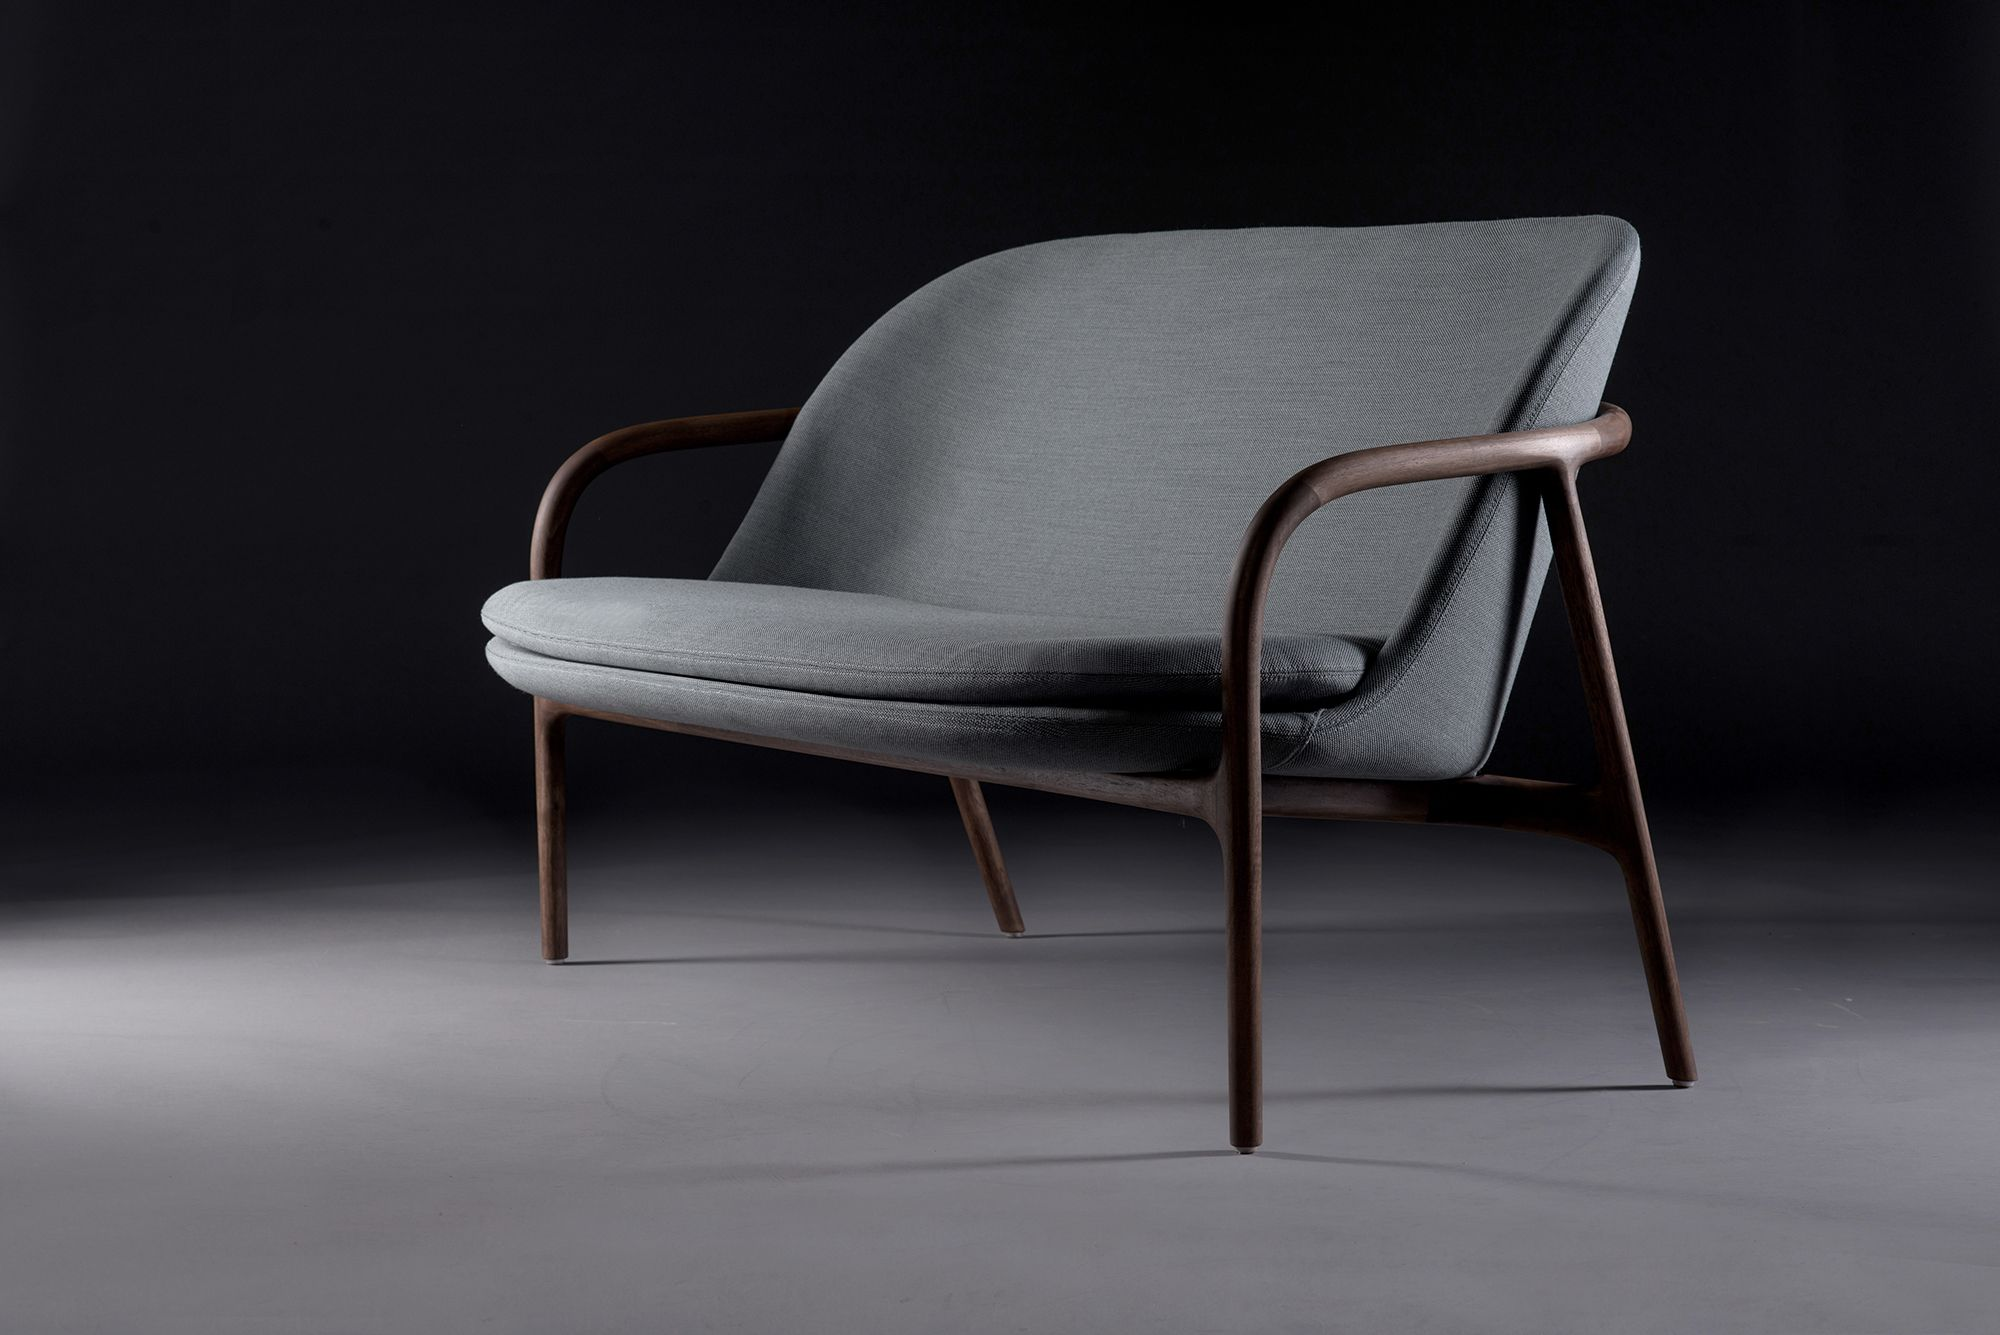 Neva Lounge designed by Regular Company is part of Lounge chair design -